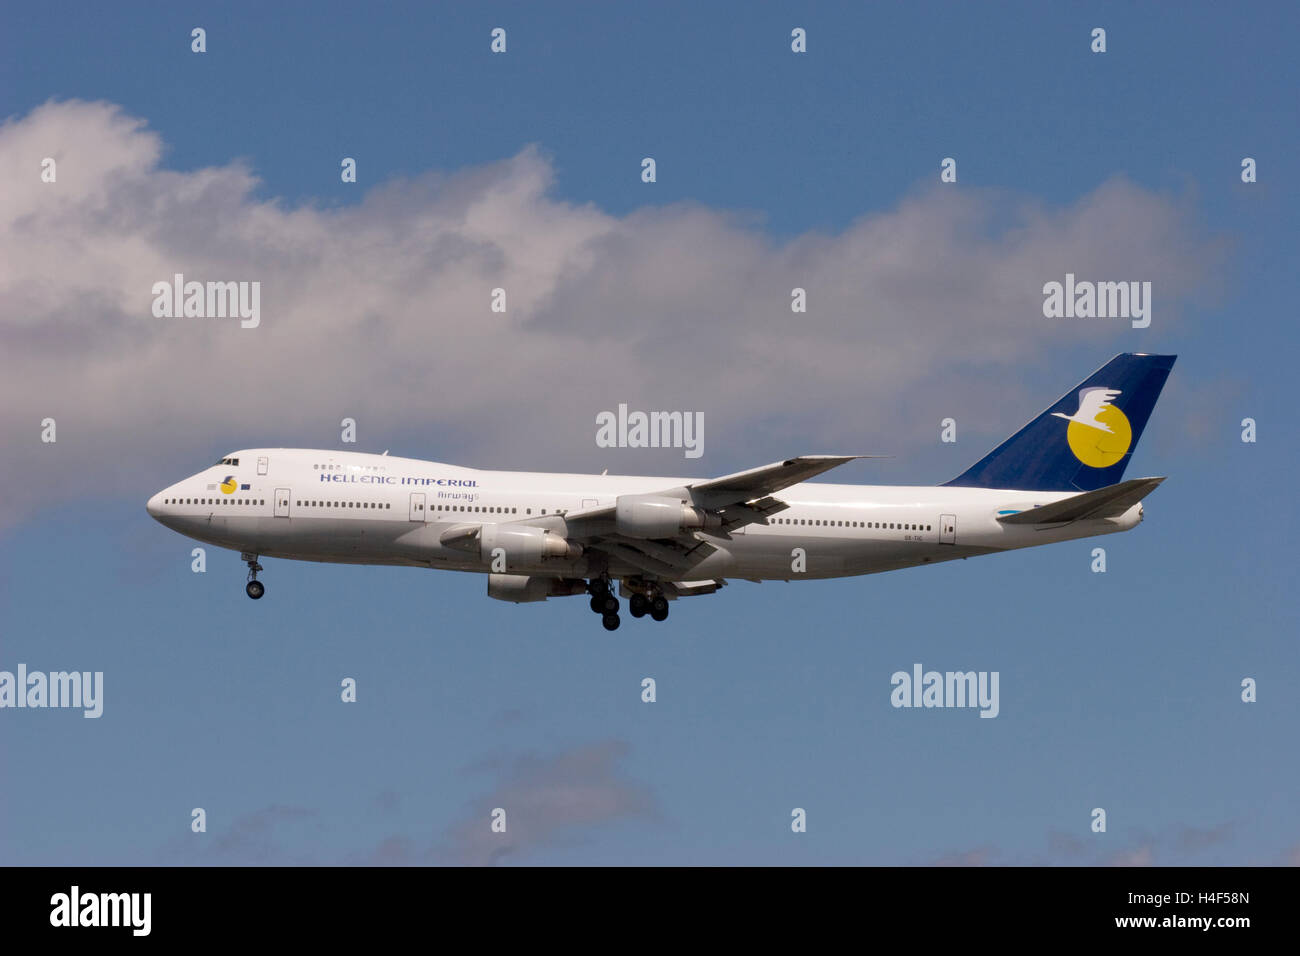 Hellenic Imperial Airways Boeing 747-281B landing at London Gatwick airport. - Stock Image